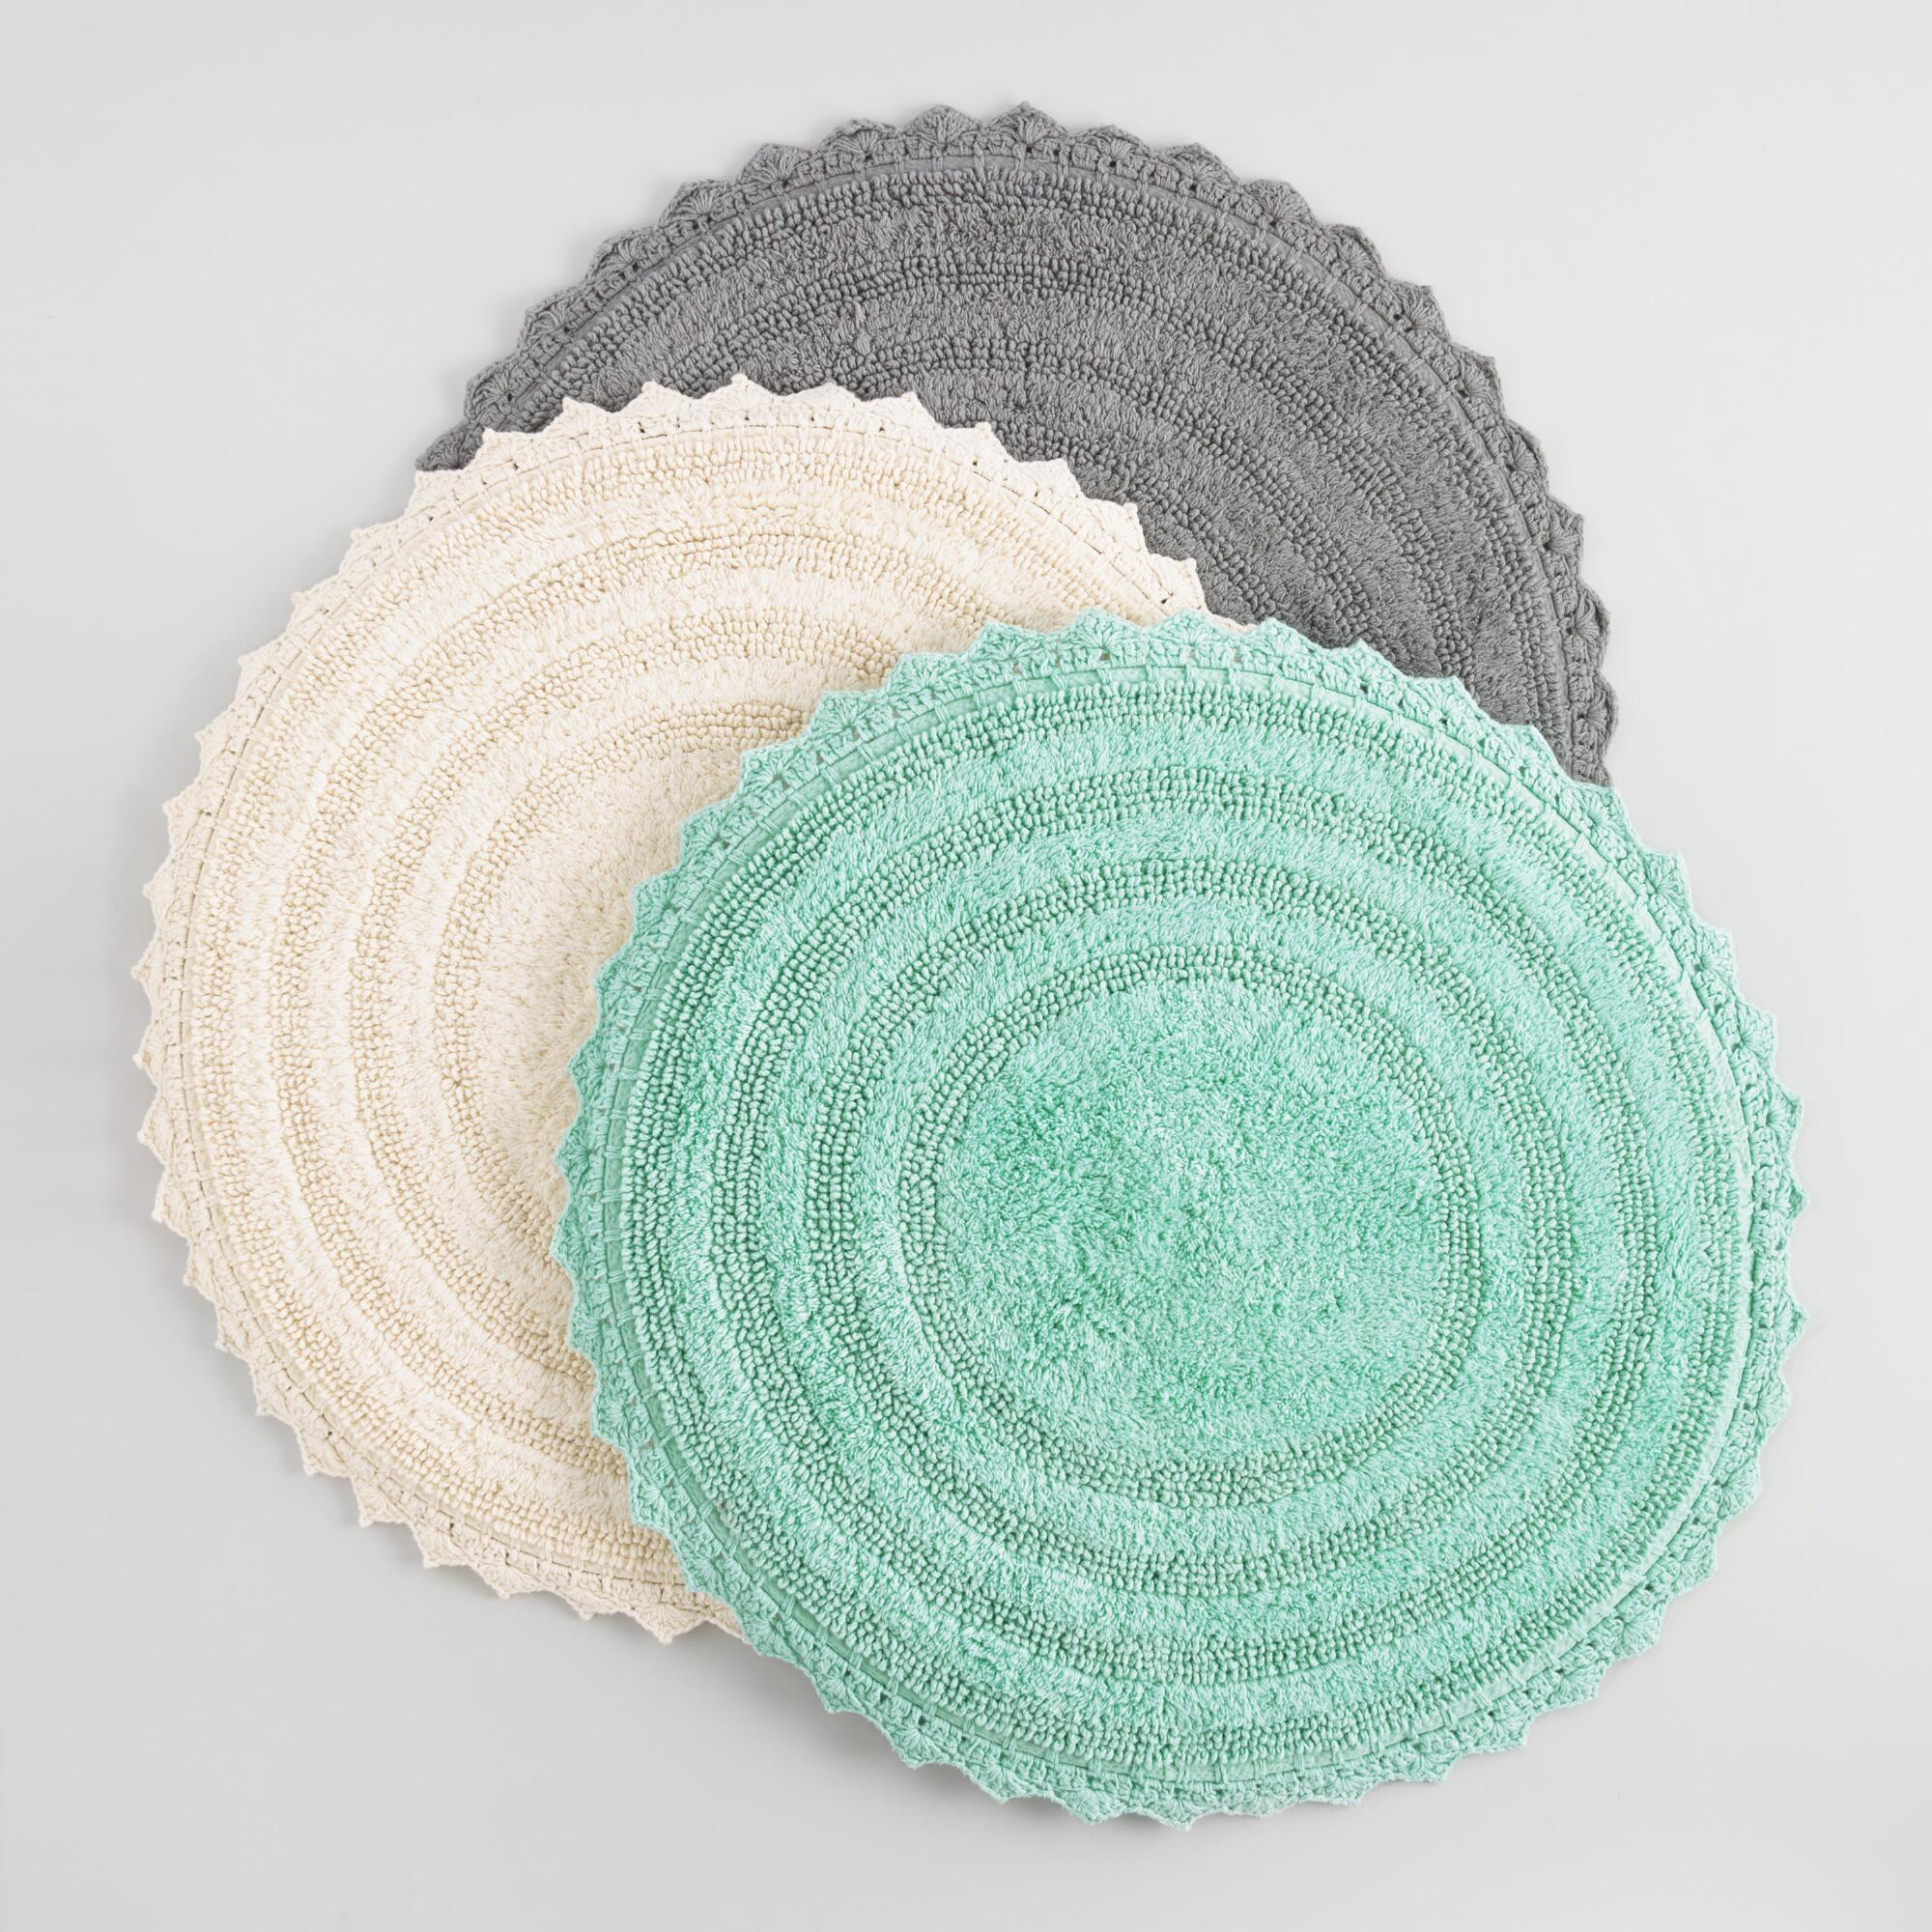 Bathroom rug set - Round Cotton Bath Mat